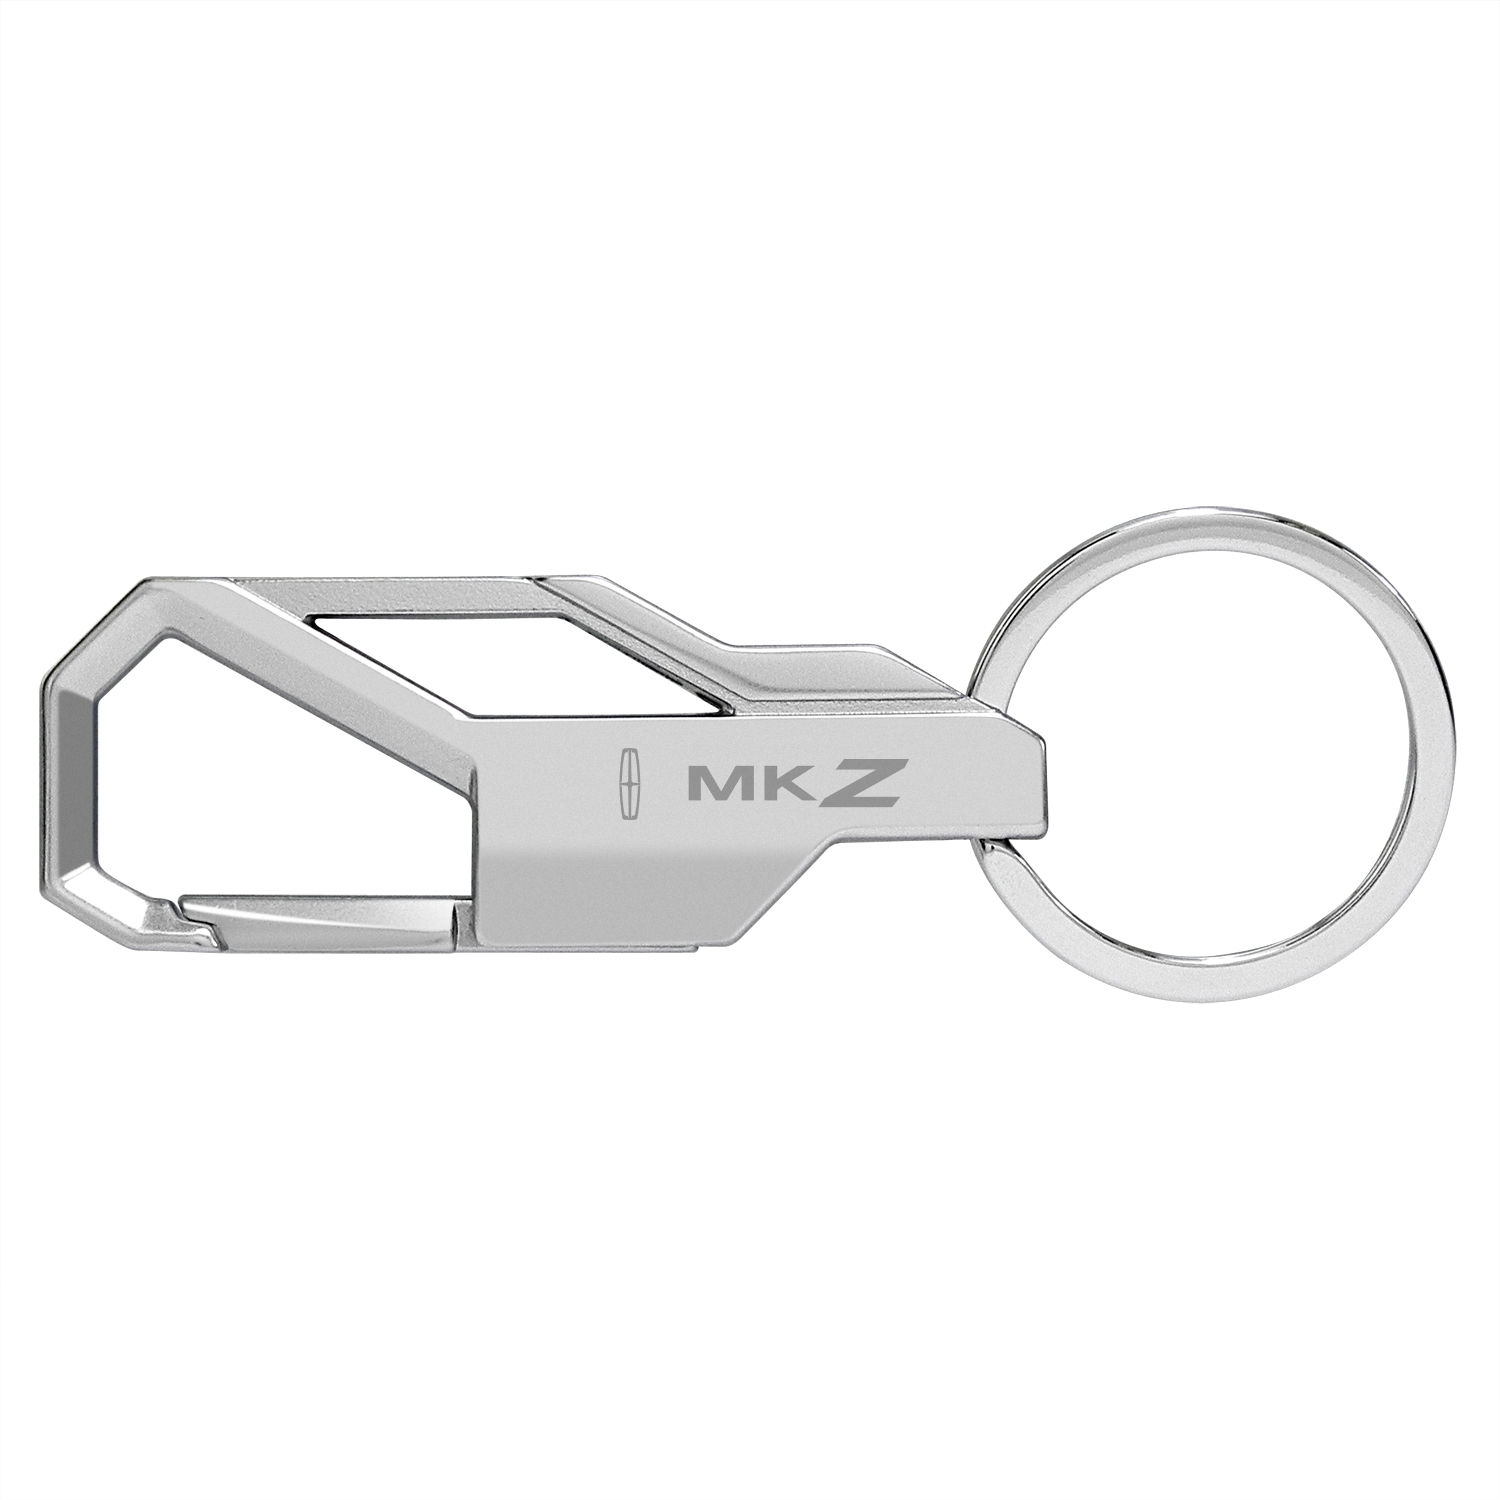 Lincoln MKZ Silver Snap Hook Metal Key Chain